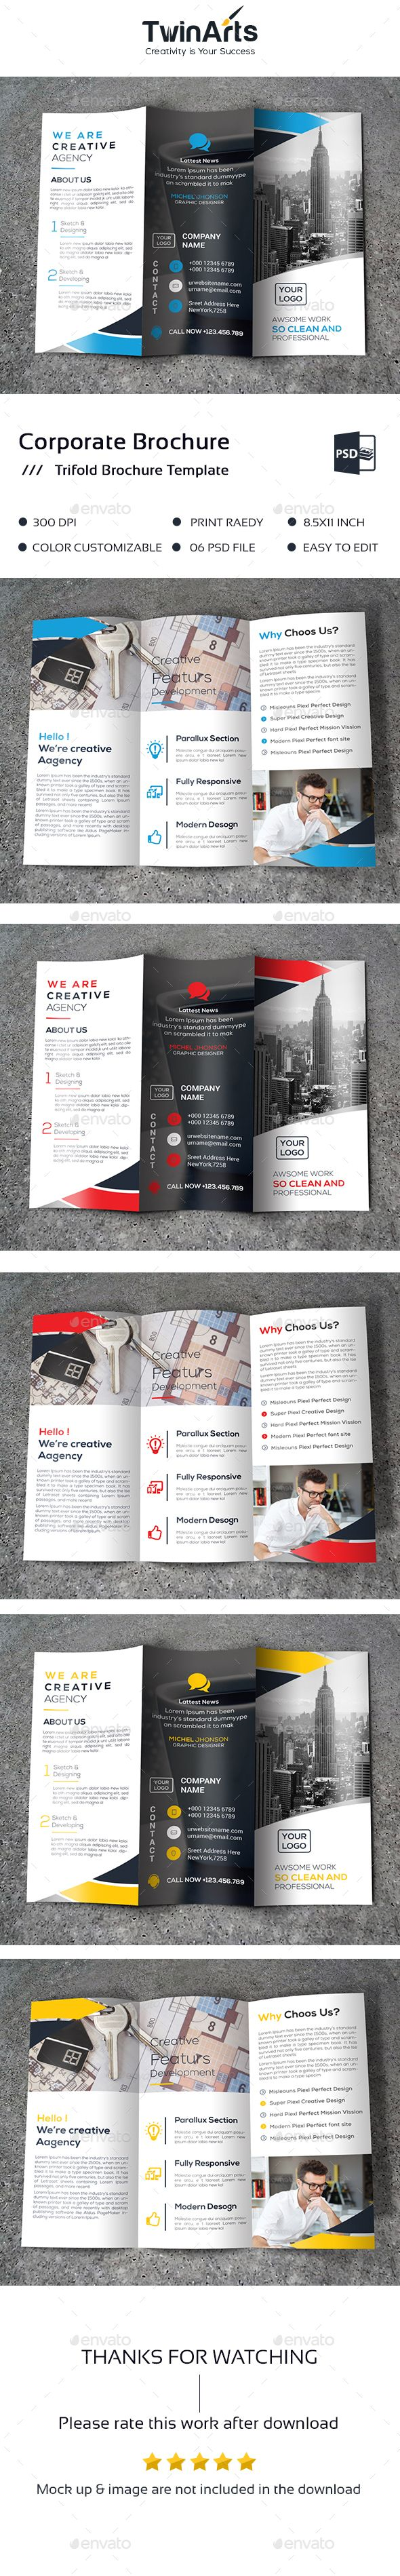 131 best Work images on Pinterest | Brochures, Advertising and ...